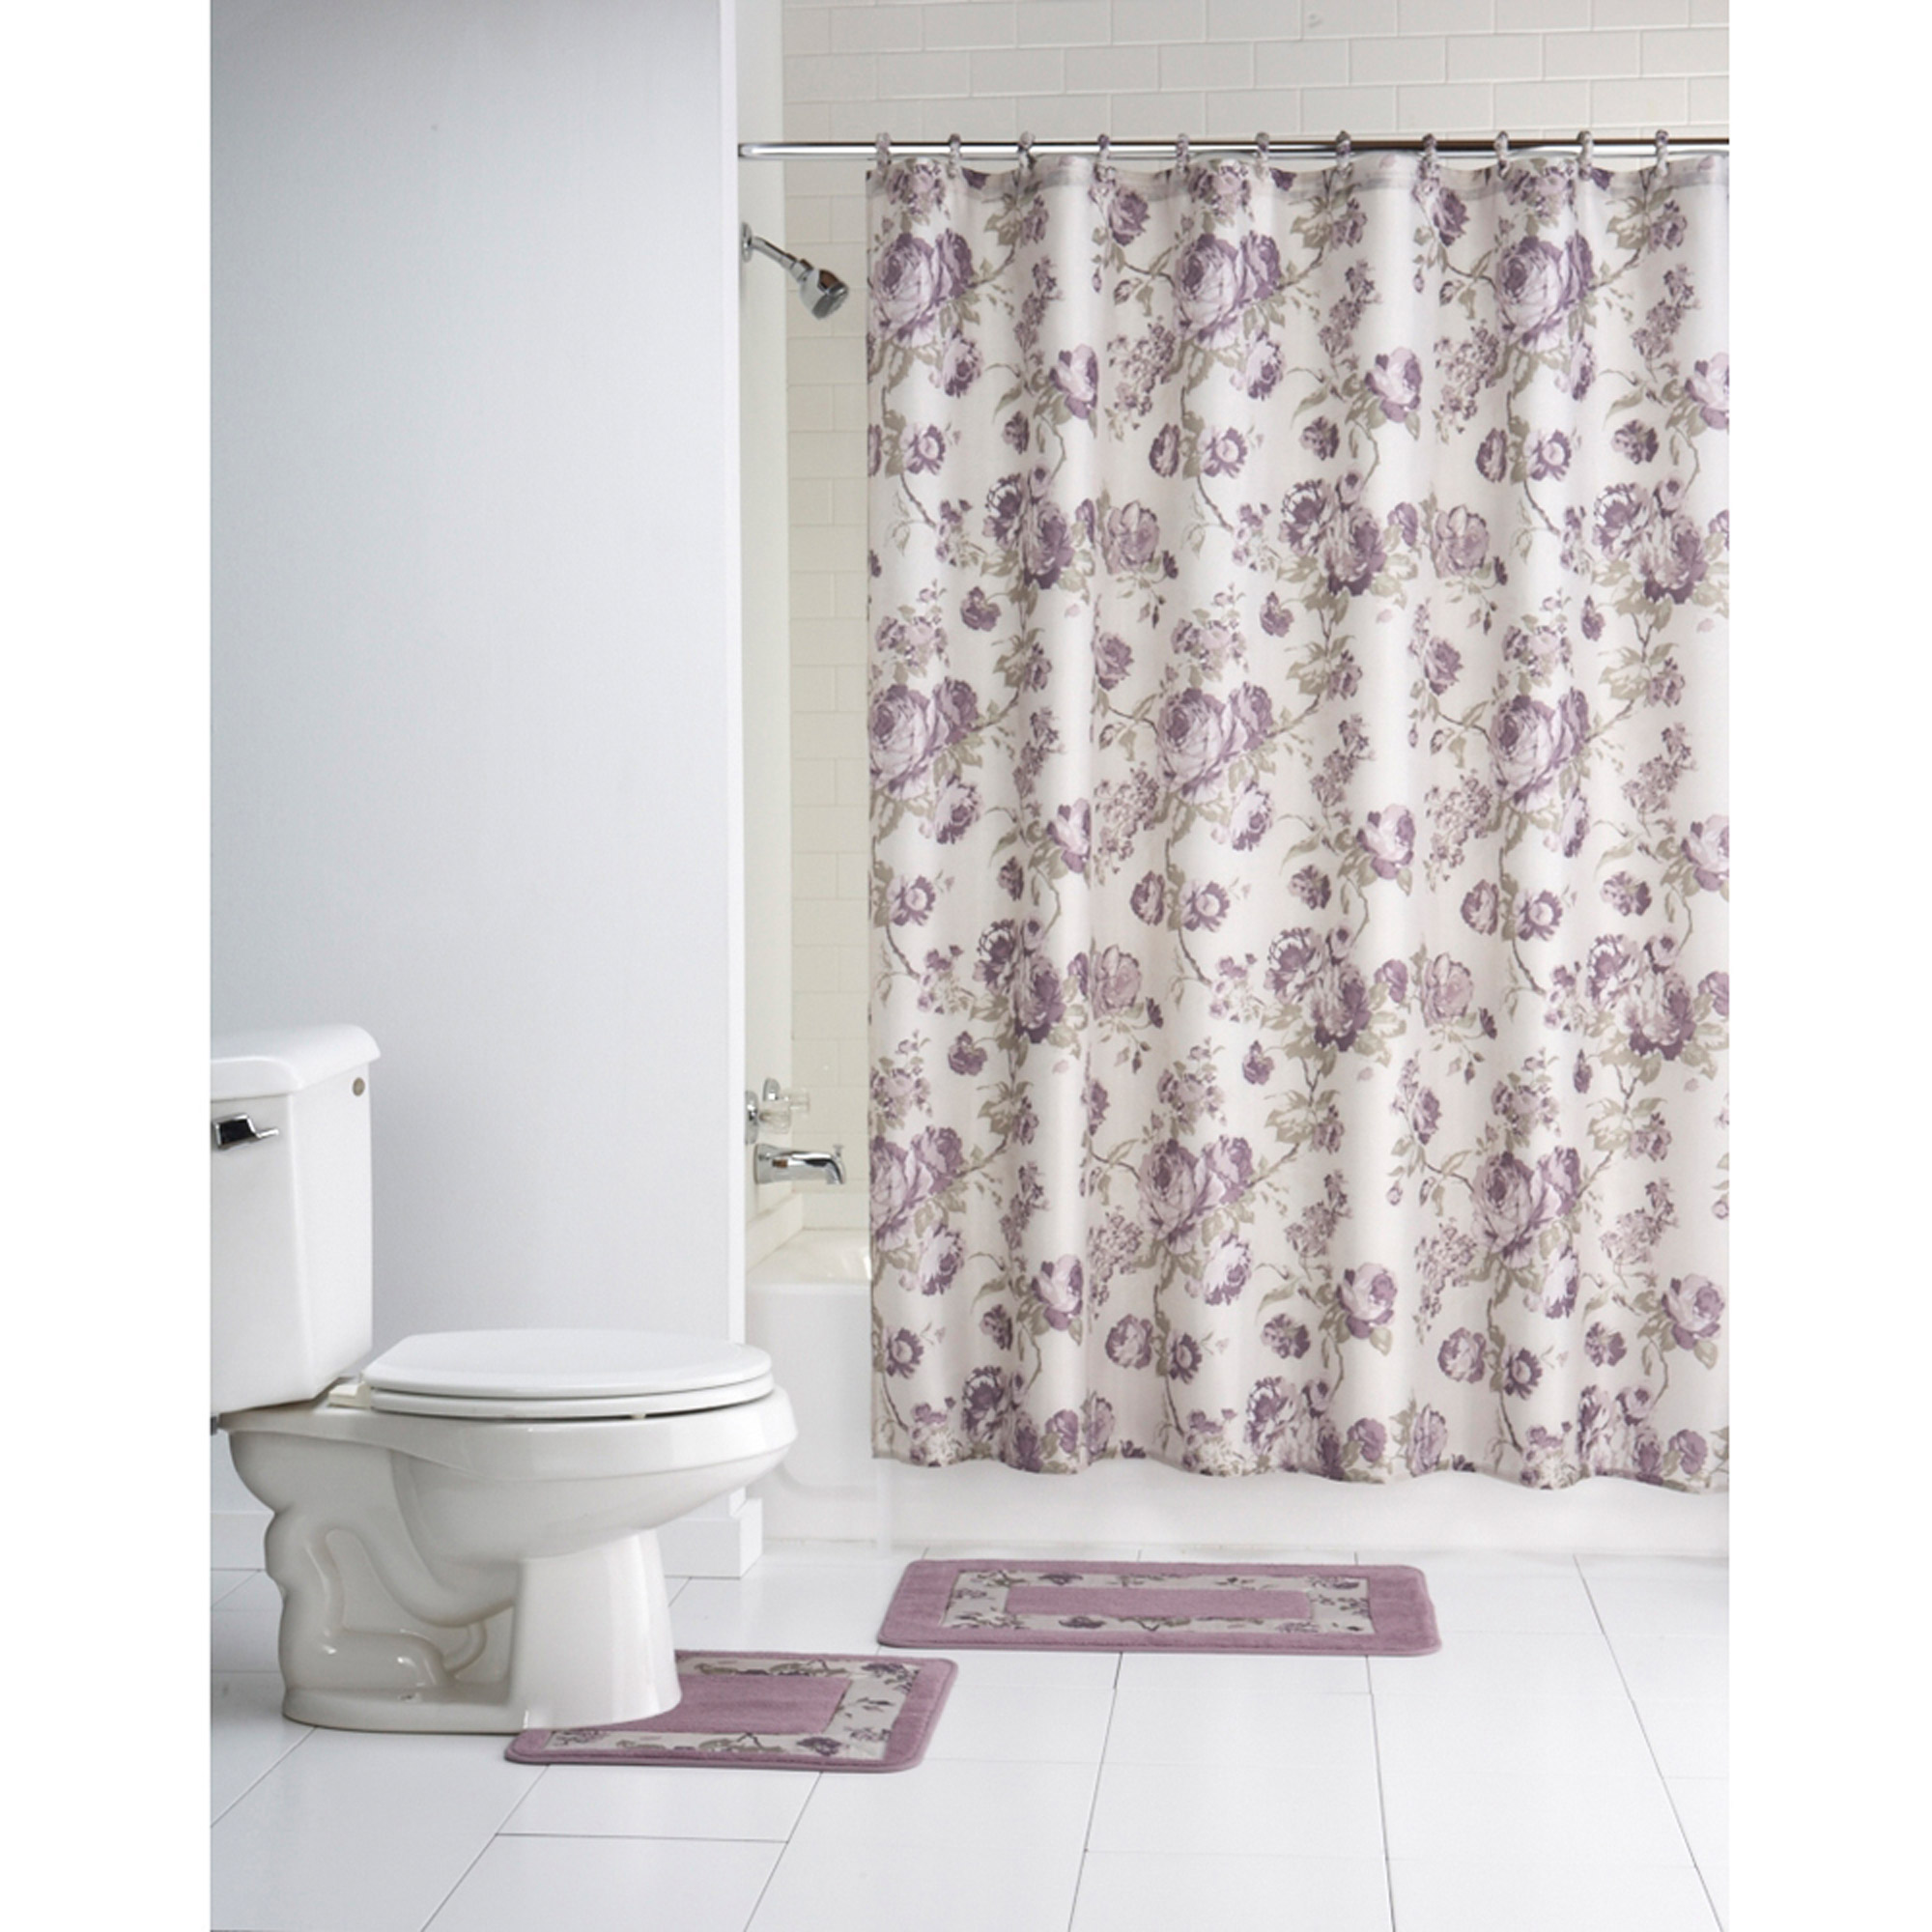 Mainstays Multi Color Fl Chelsea 15 Piece Polyester Bath In A Bag Set Shower Curtain And Rugs Included